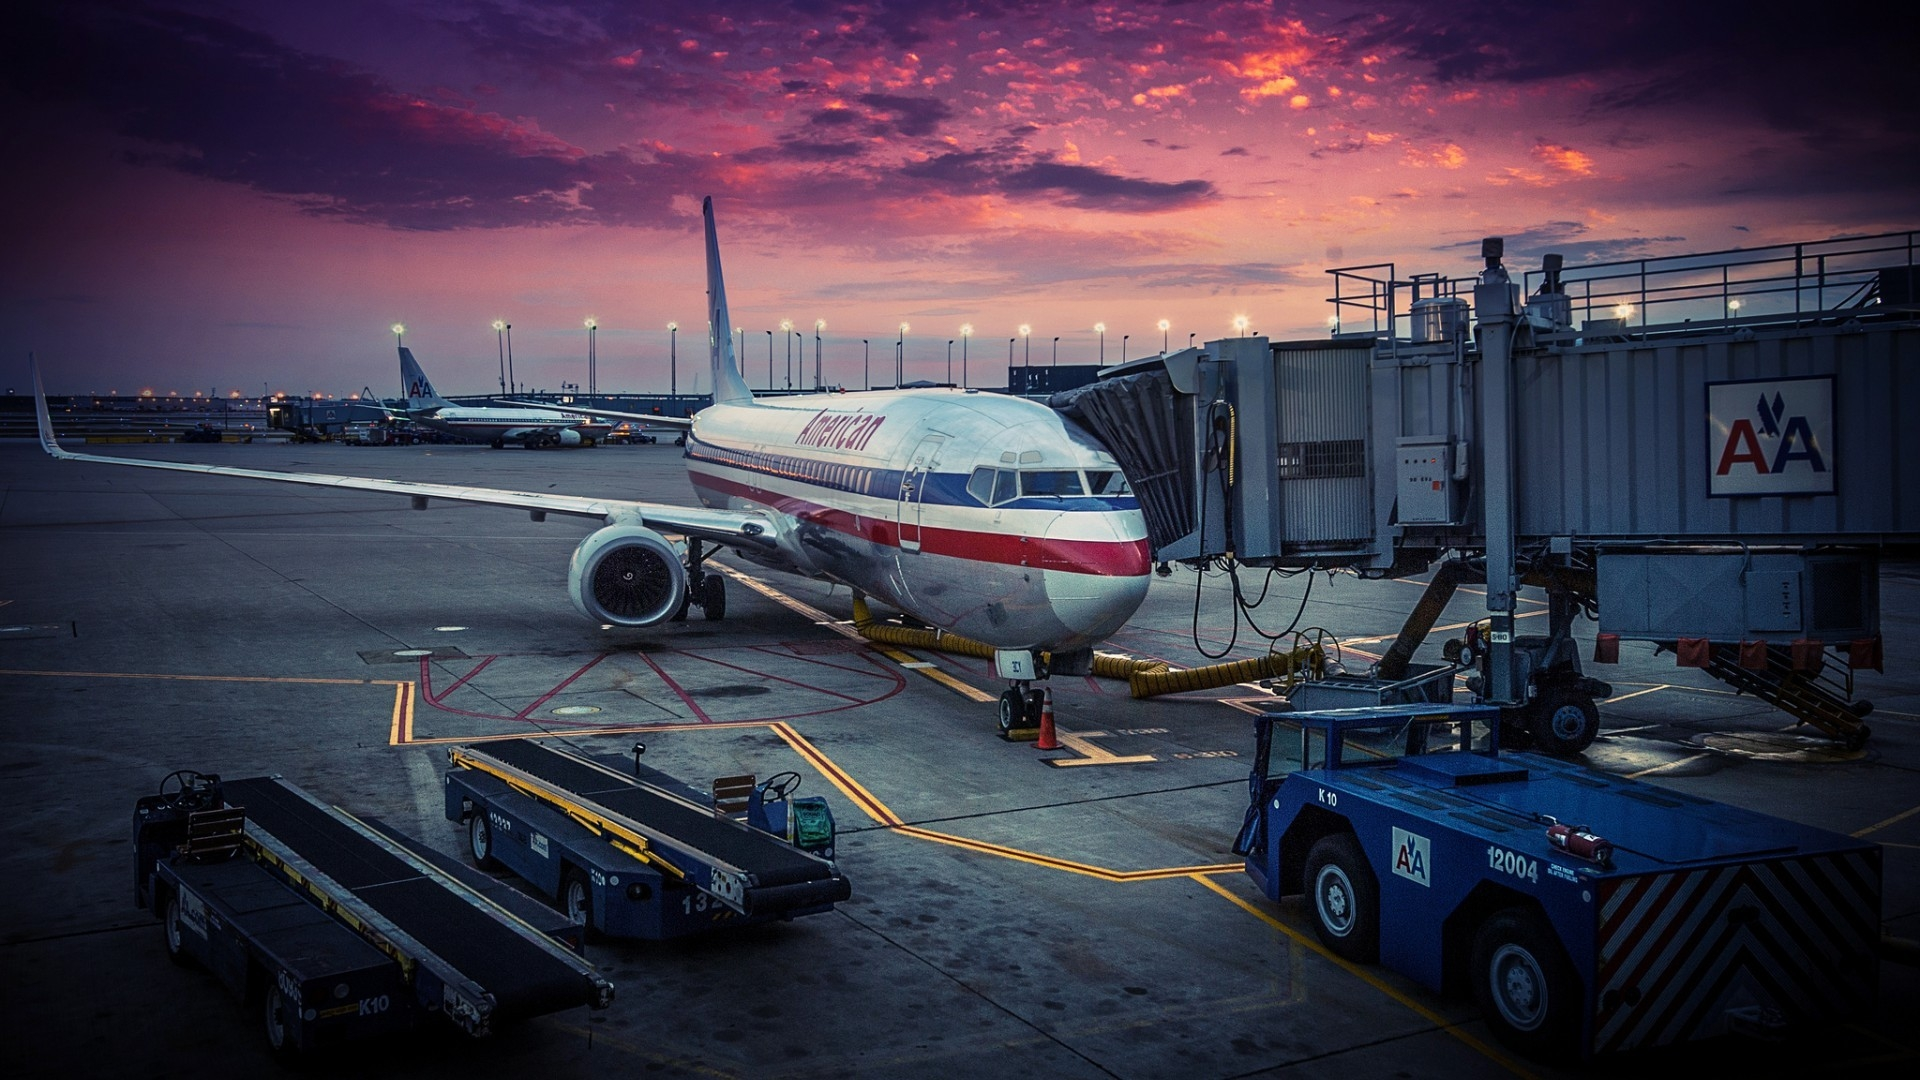 1920x1080 American Airlines Passenger Jet